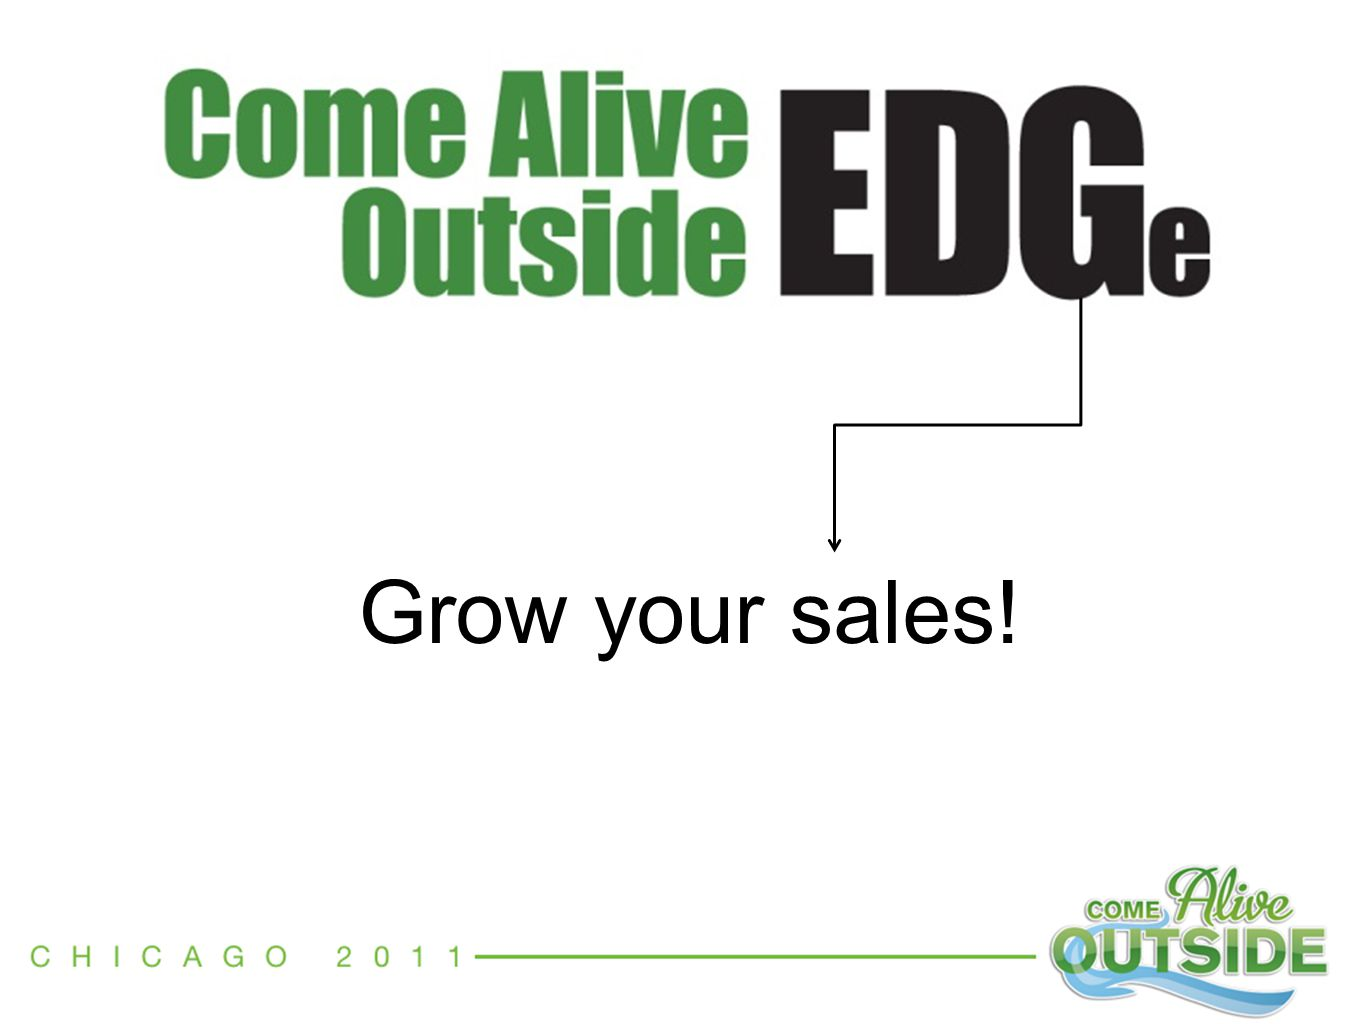 Grow your sales!